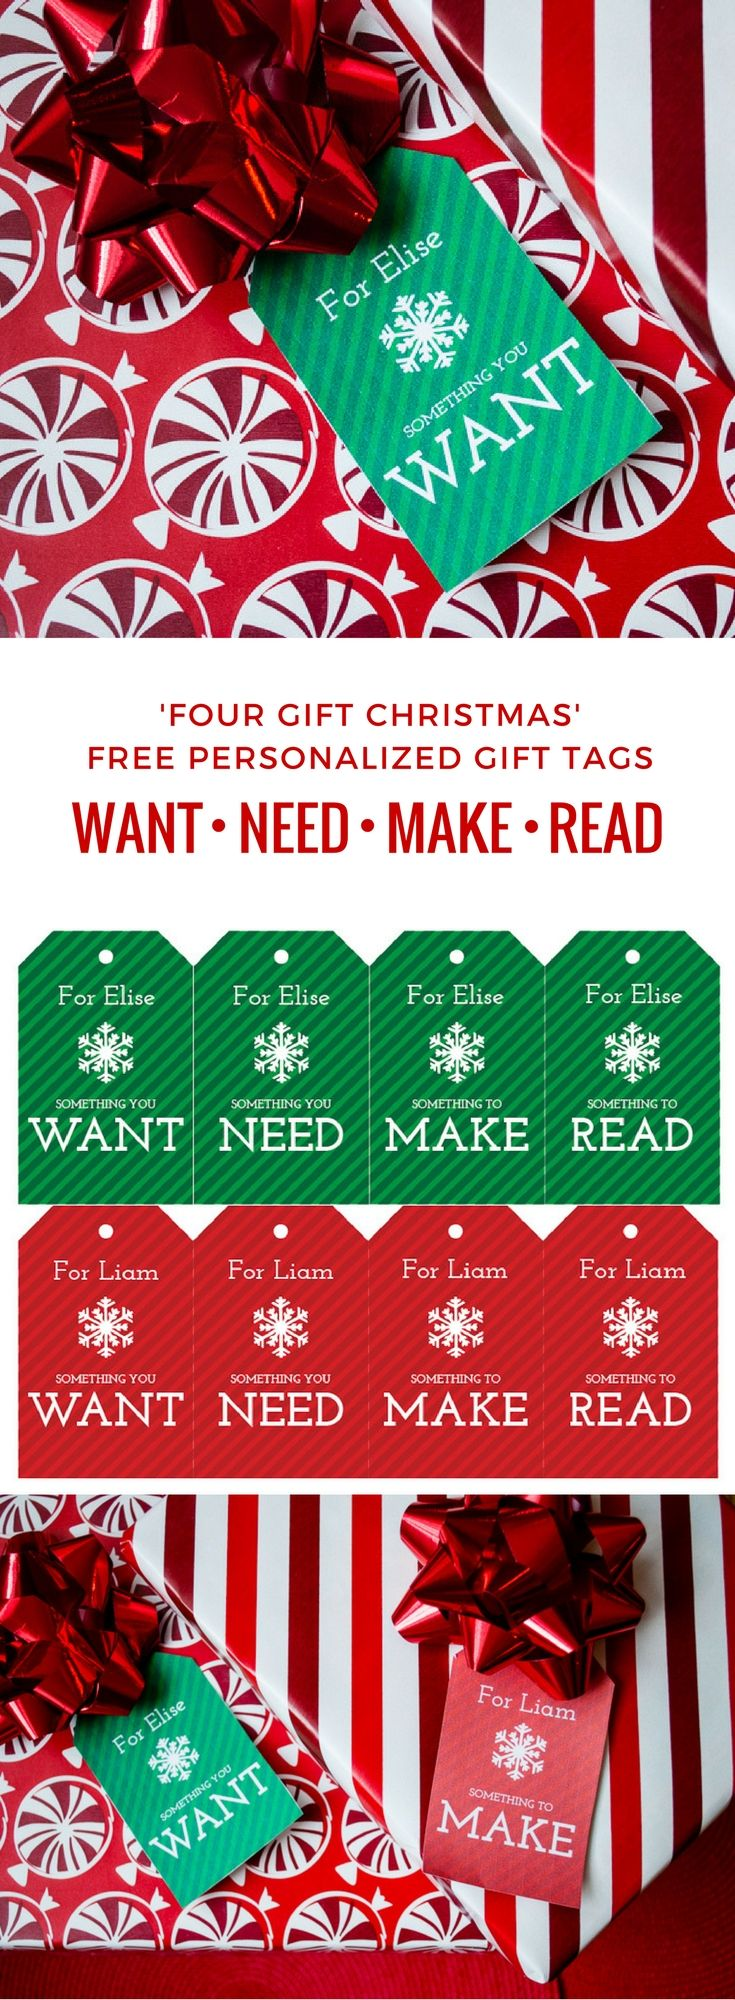 Free printable DIY gift tags for a Four Gift Christmas. Each child gets four meaningful presents: Something You Want, Something You Need, Something to Make, Something to Read. Just download, type to personalize, and print to simplify Christmas.